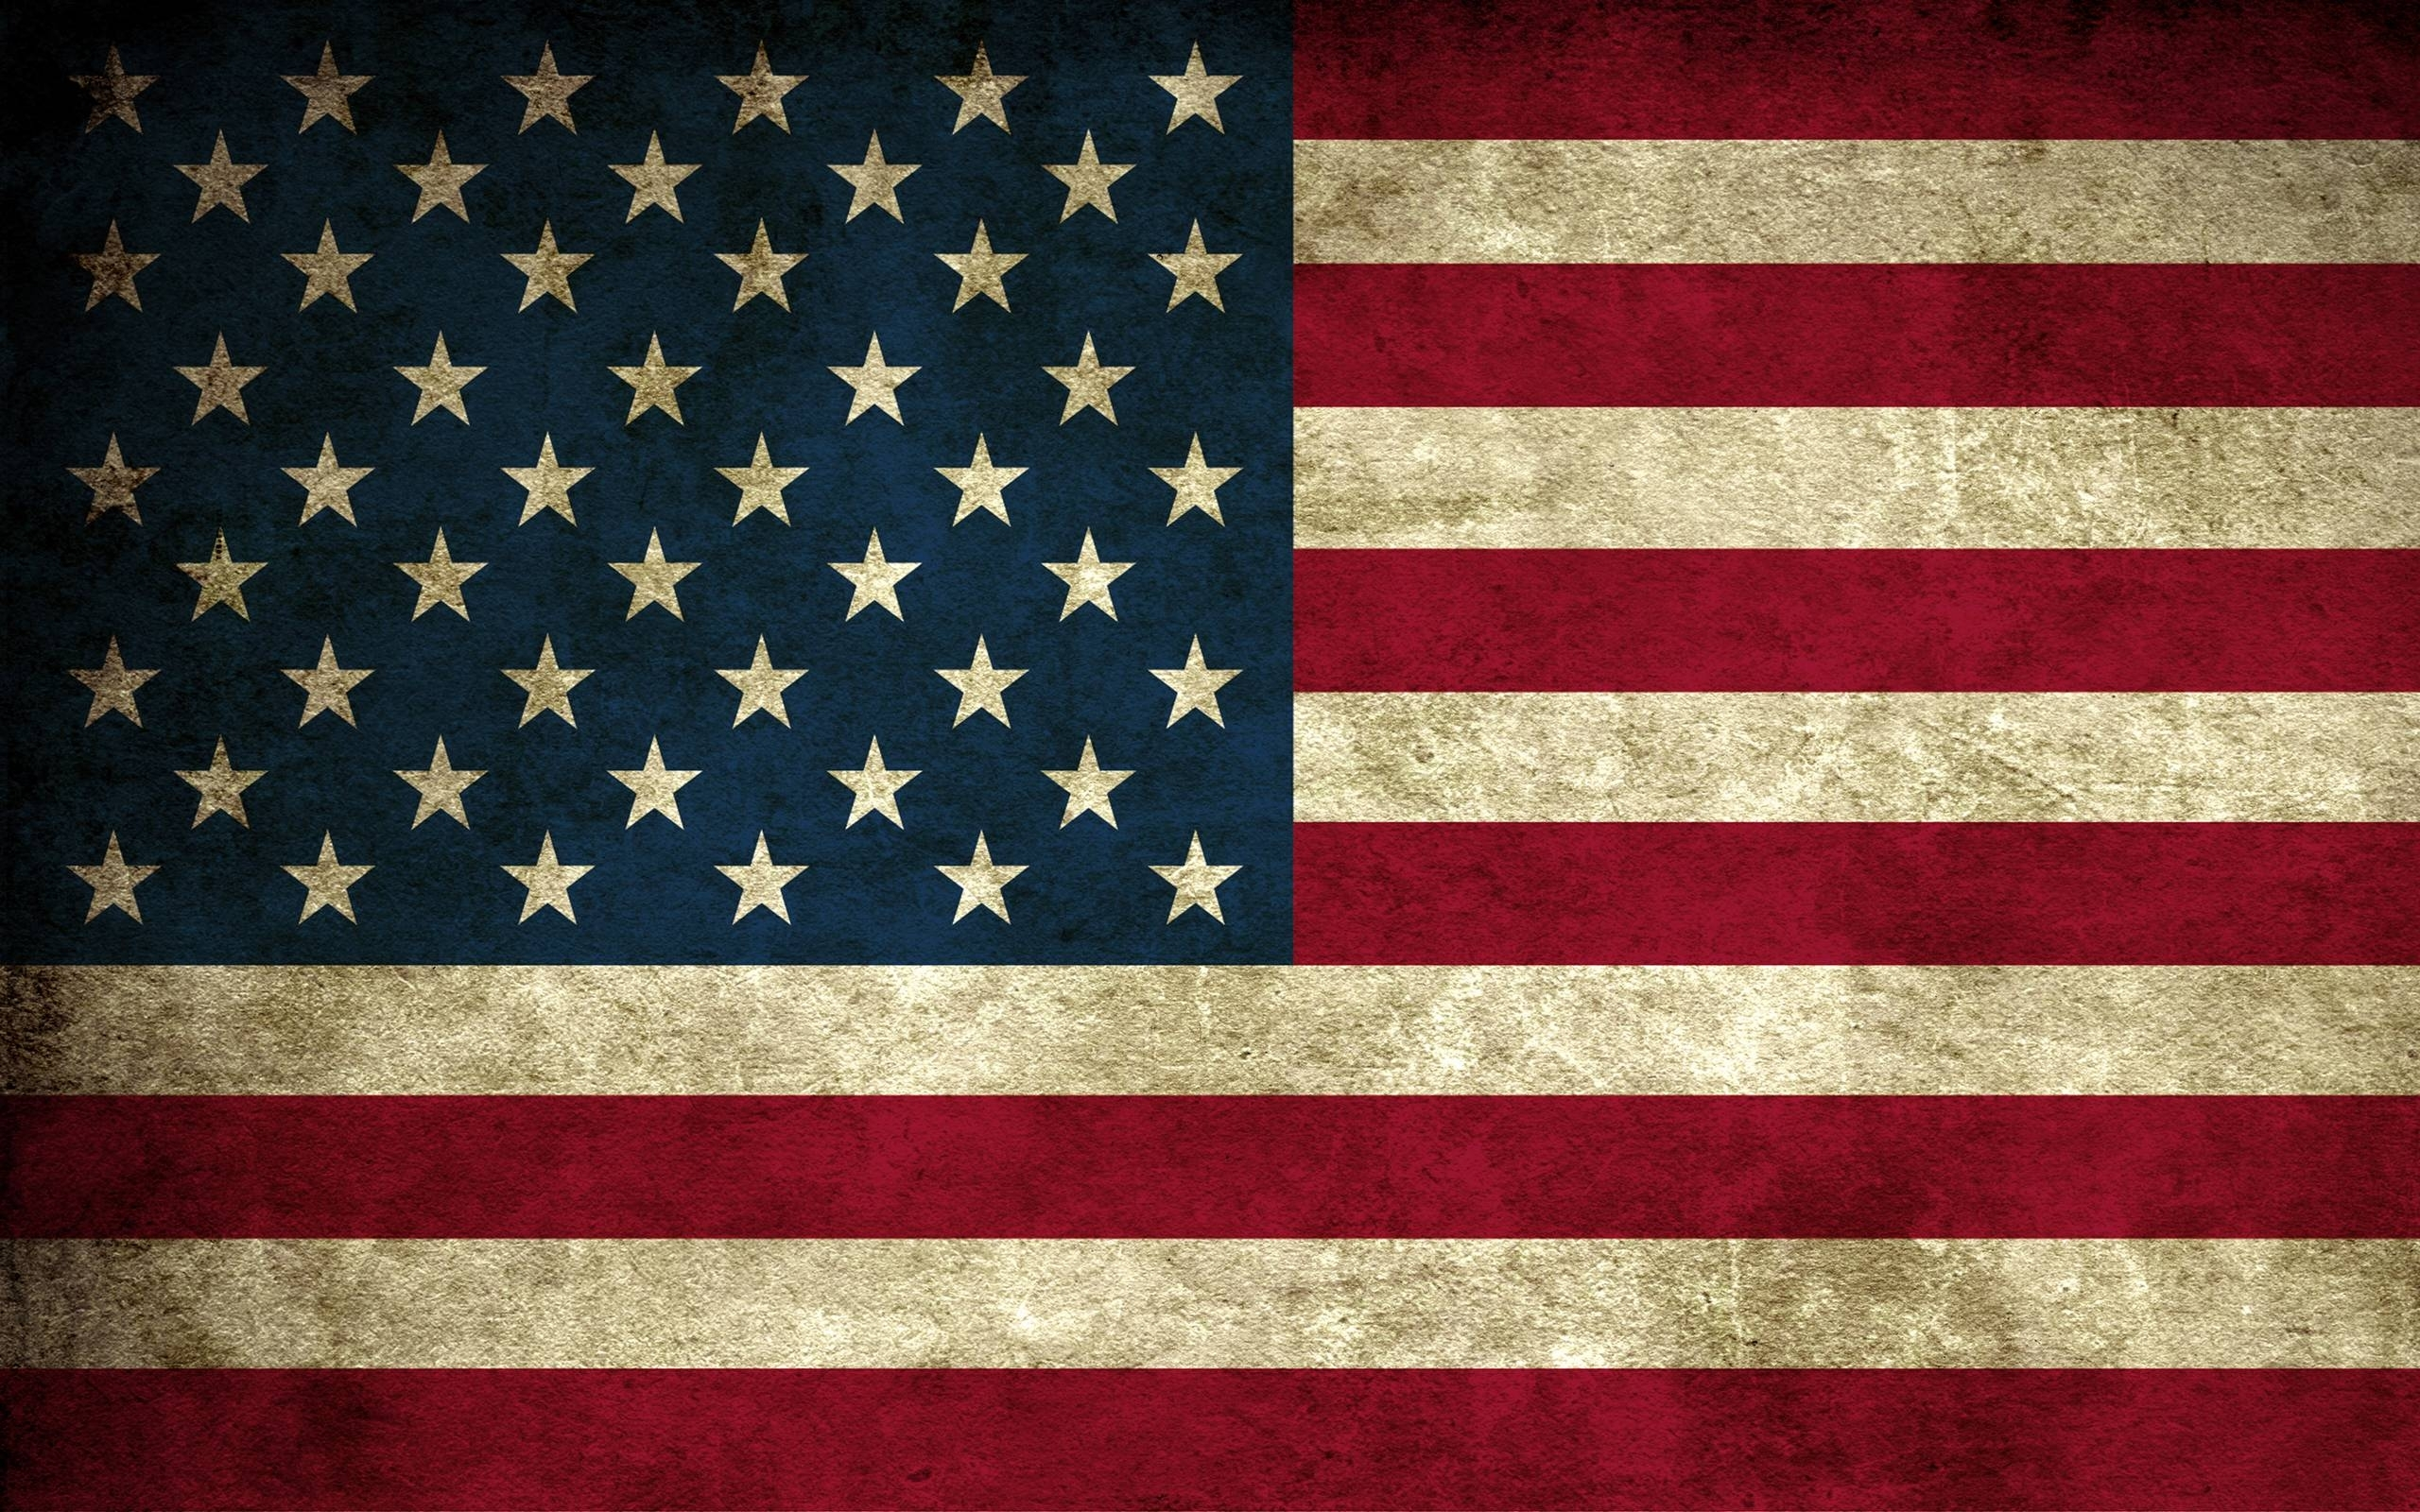 10 New American Flag Phone Wallpaper FULL HD 1920×1080 For PC Background